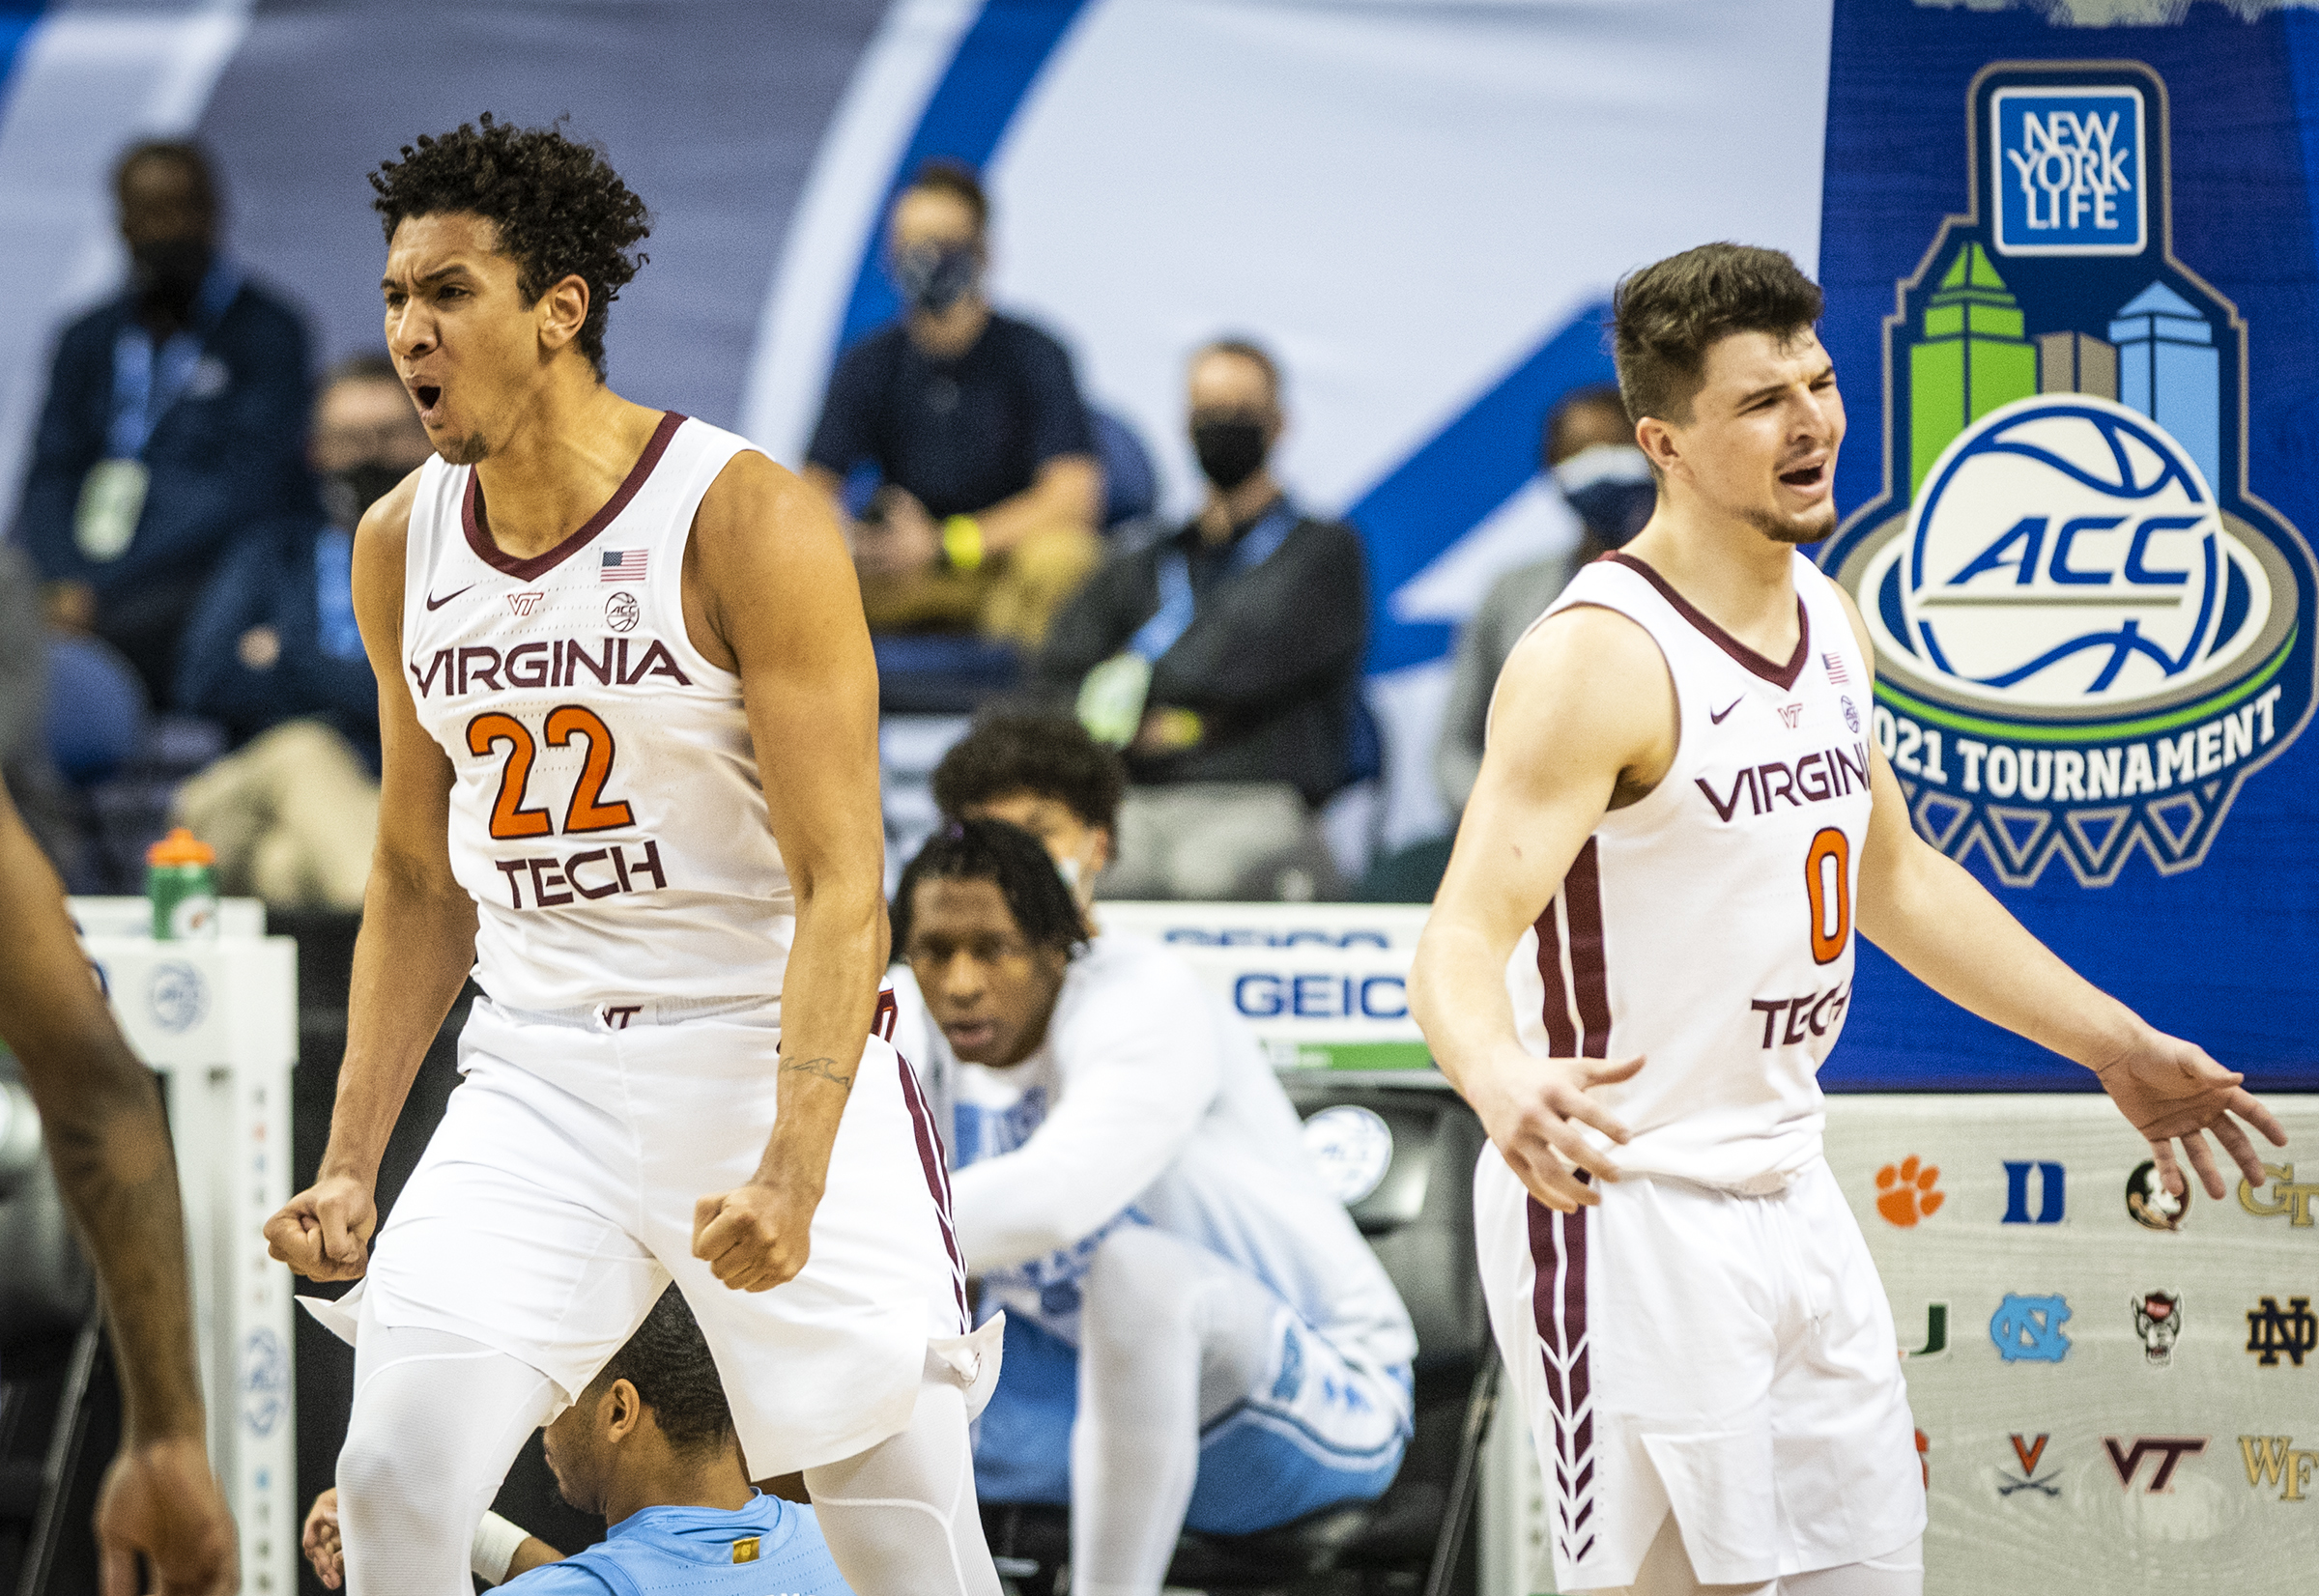 Virginia Tech Earns At-Large Bid for the 2021 NCAA Tournament